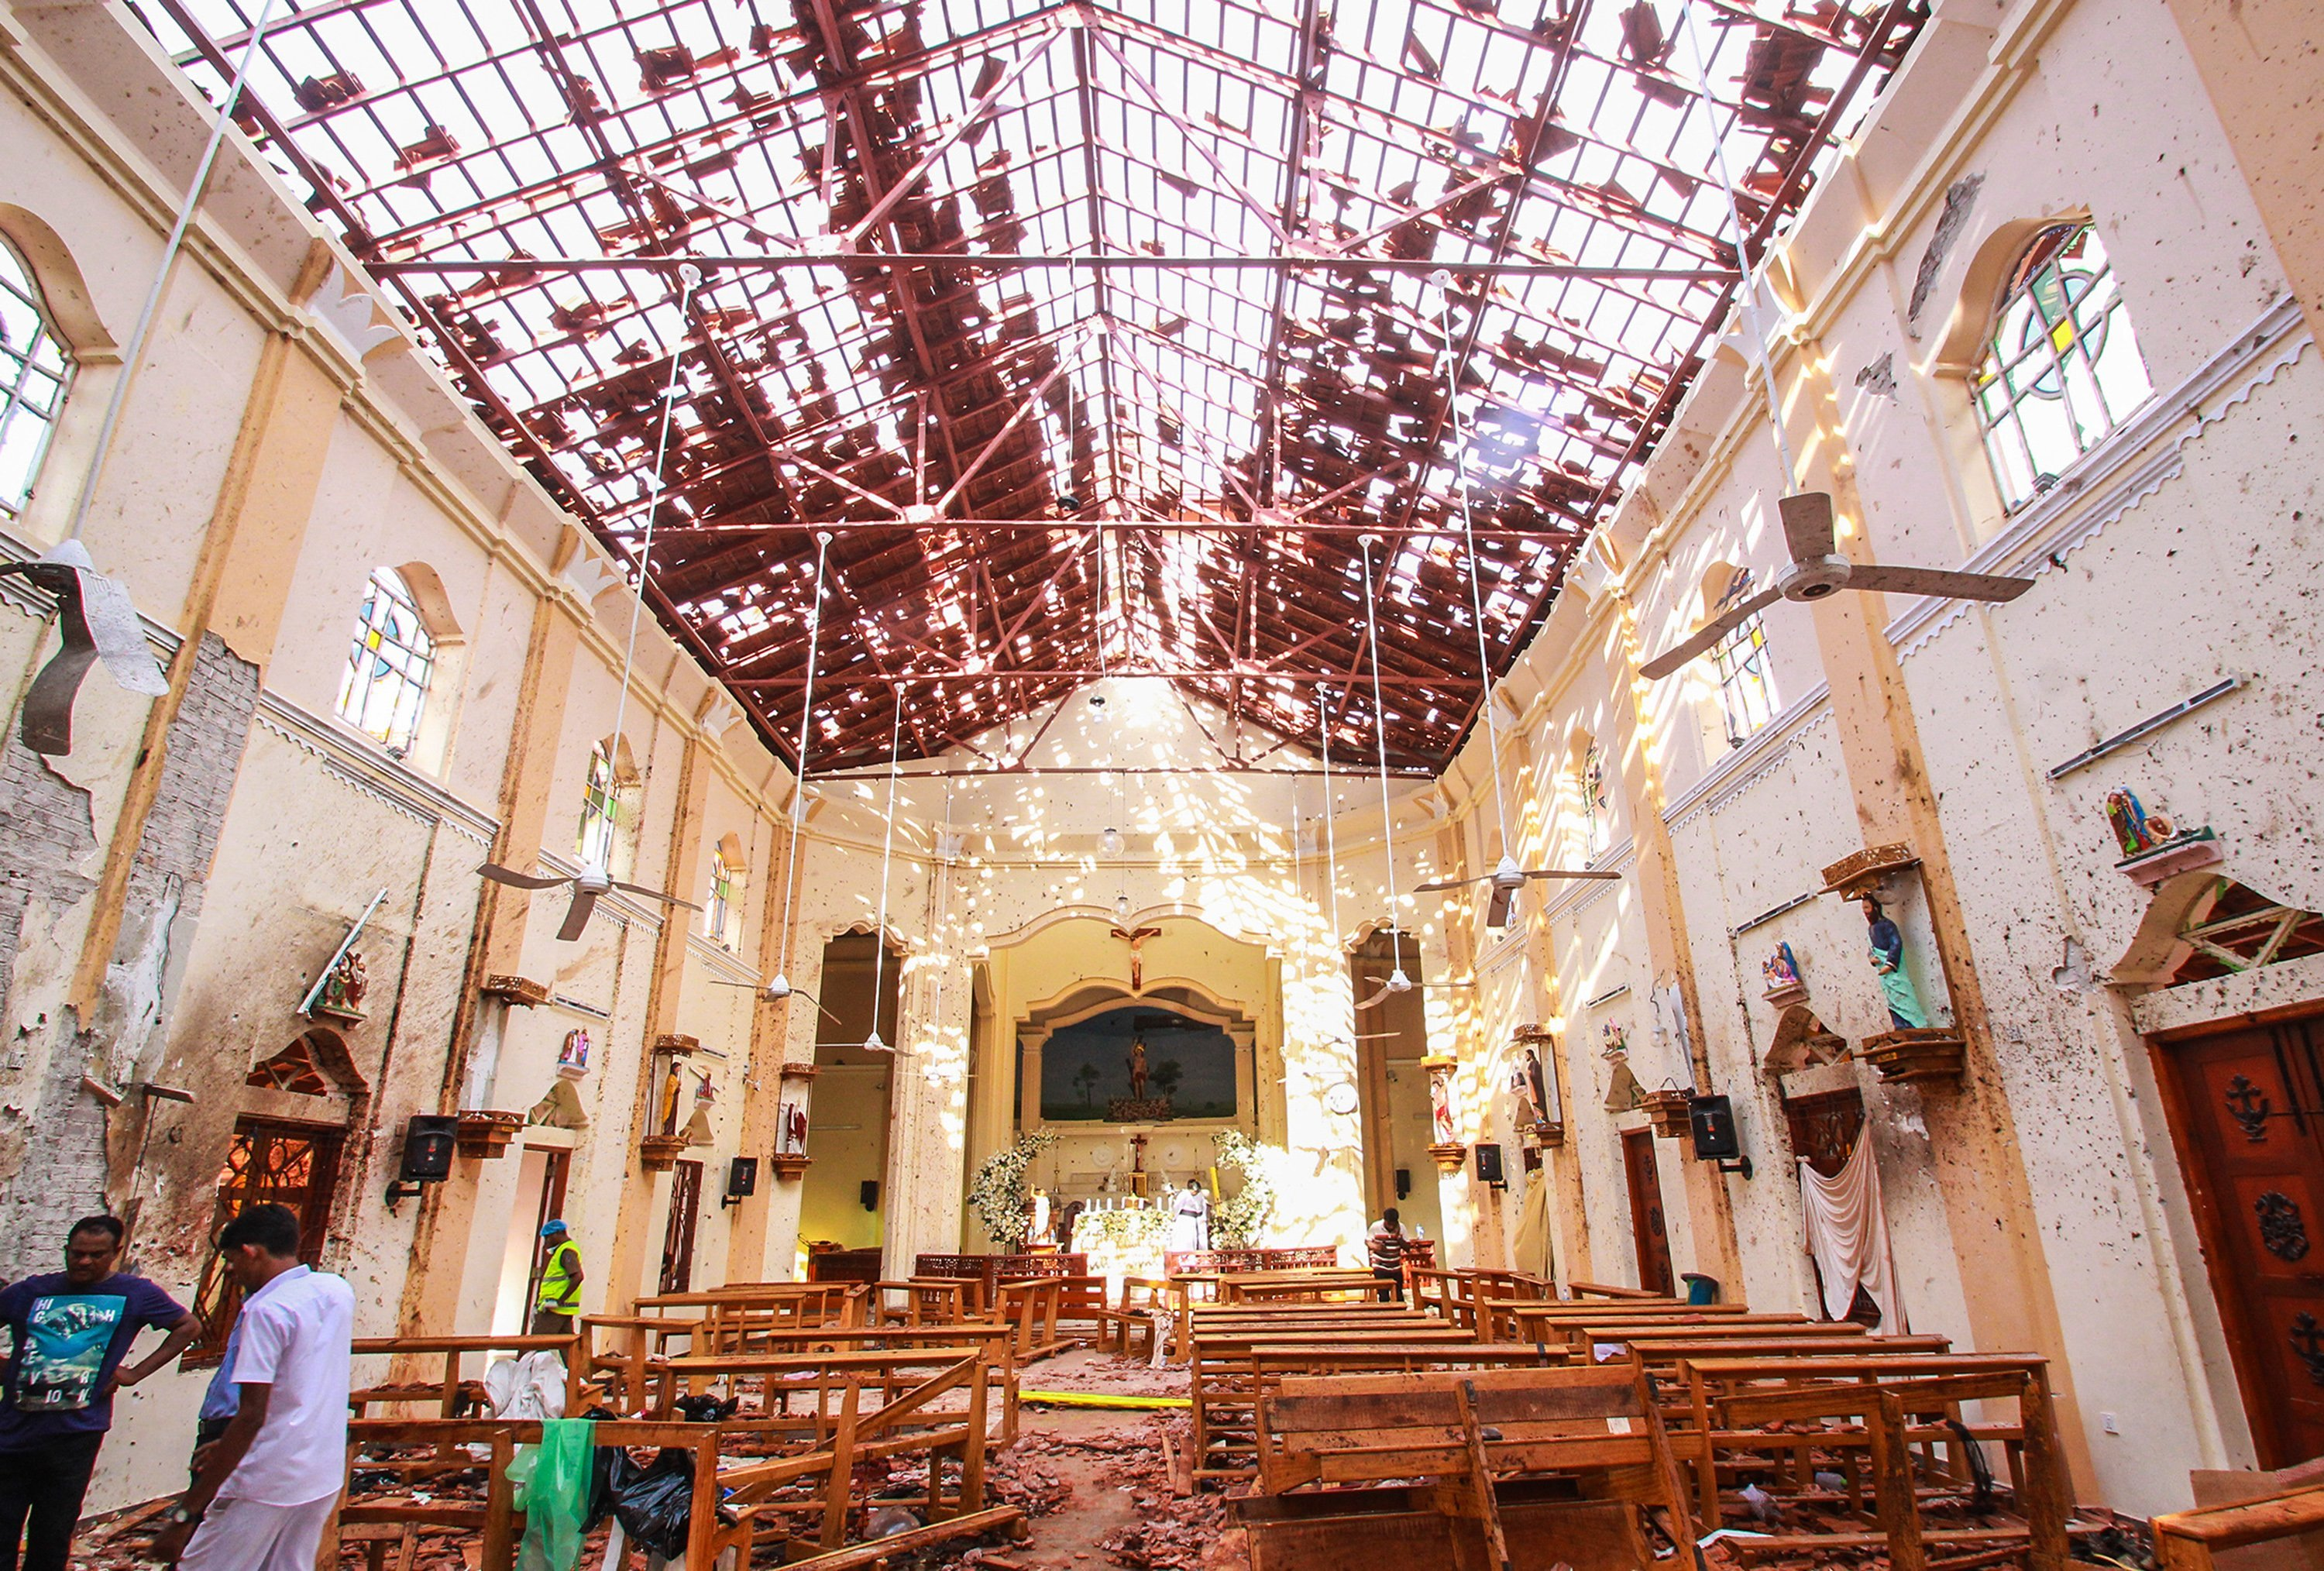 Auhorities inspect St. Sebastian's Church in Negombo, North of Colombo, in Sri Lanka   Photo: Getty Images